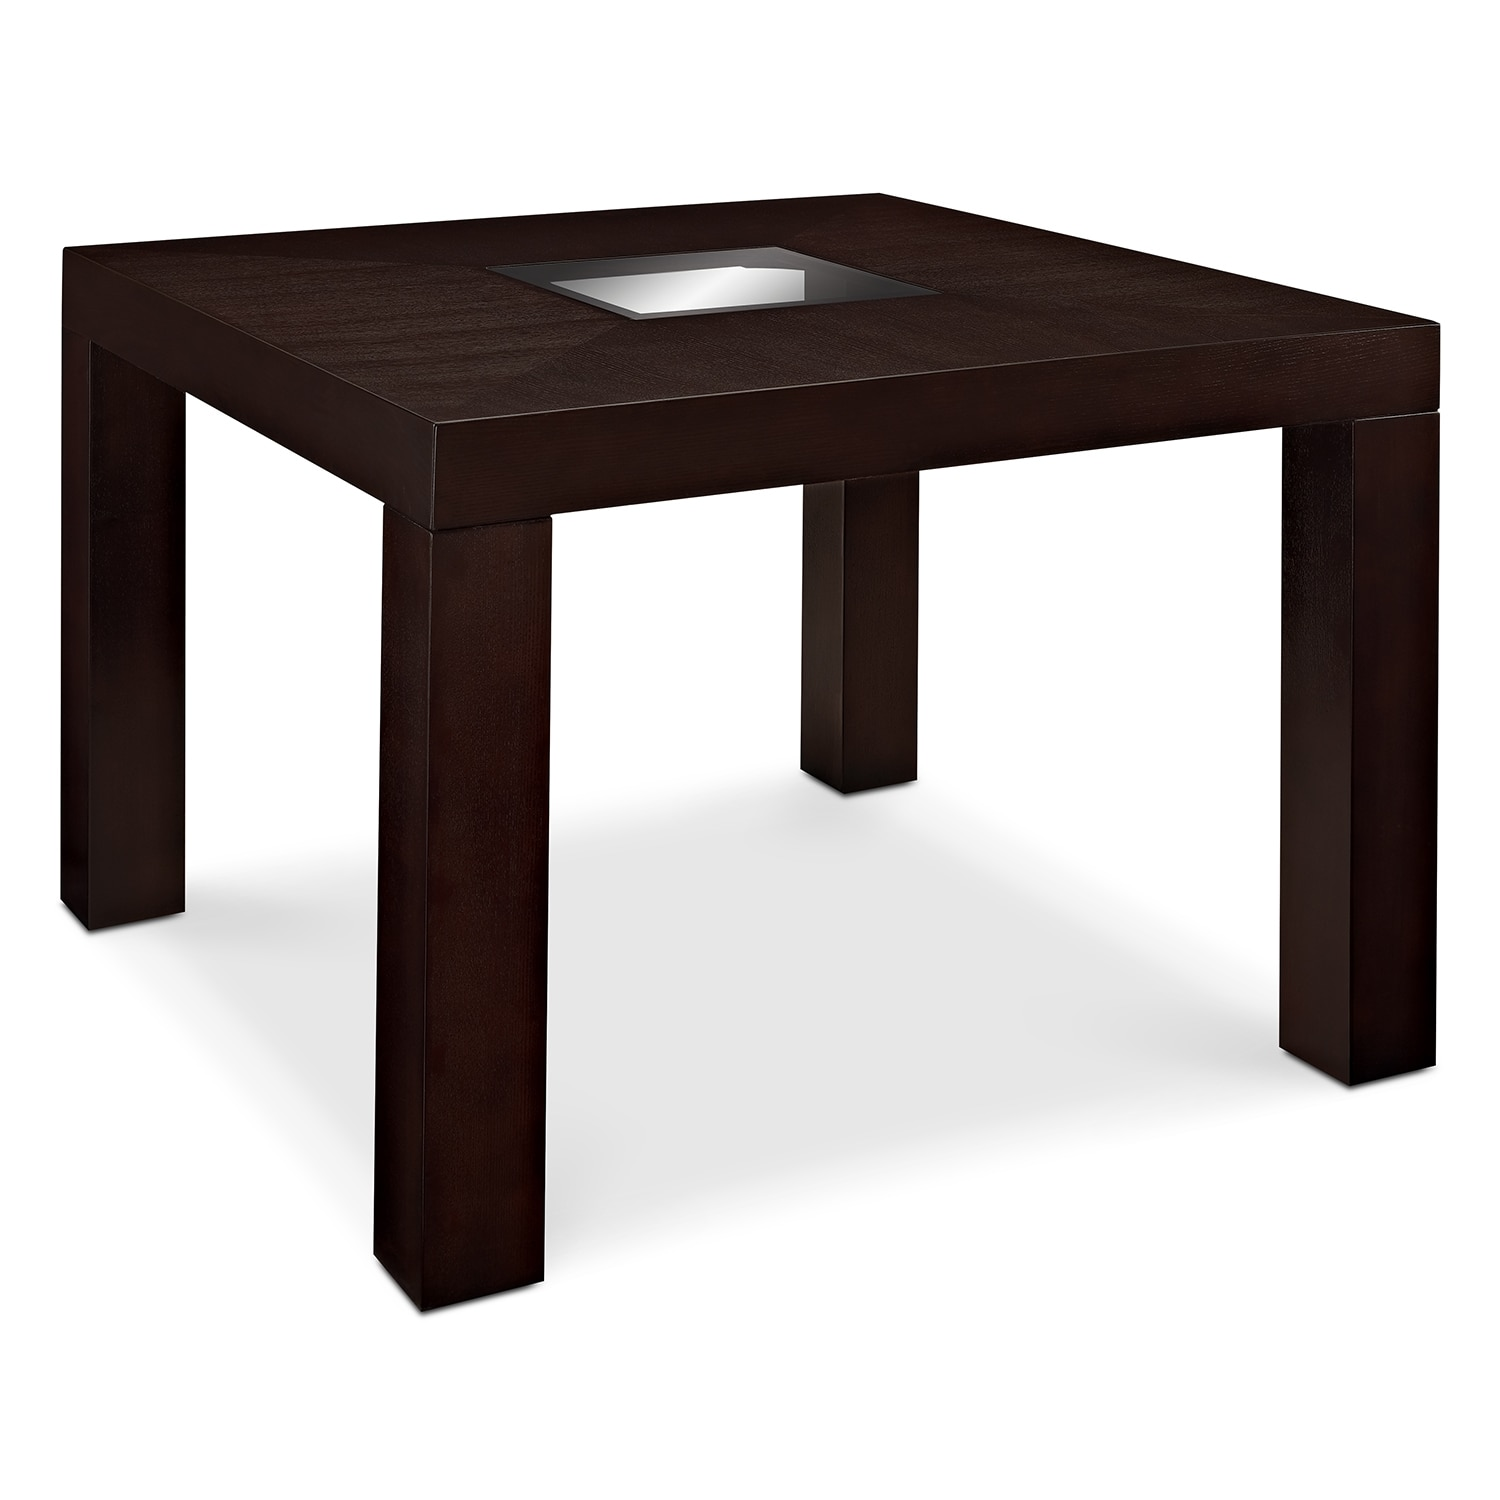 Value City Dining Room Tables Value City Dining Sets Value As Well Dining Room Sets Value City